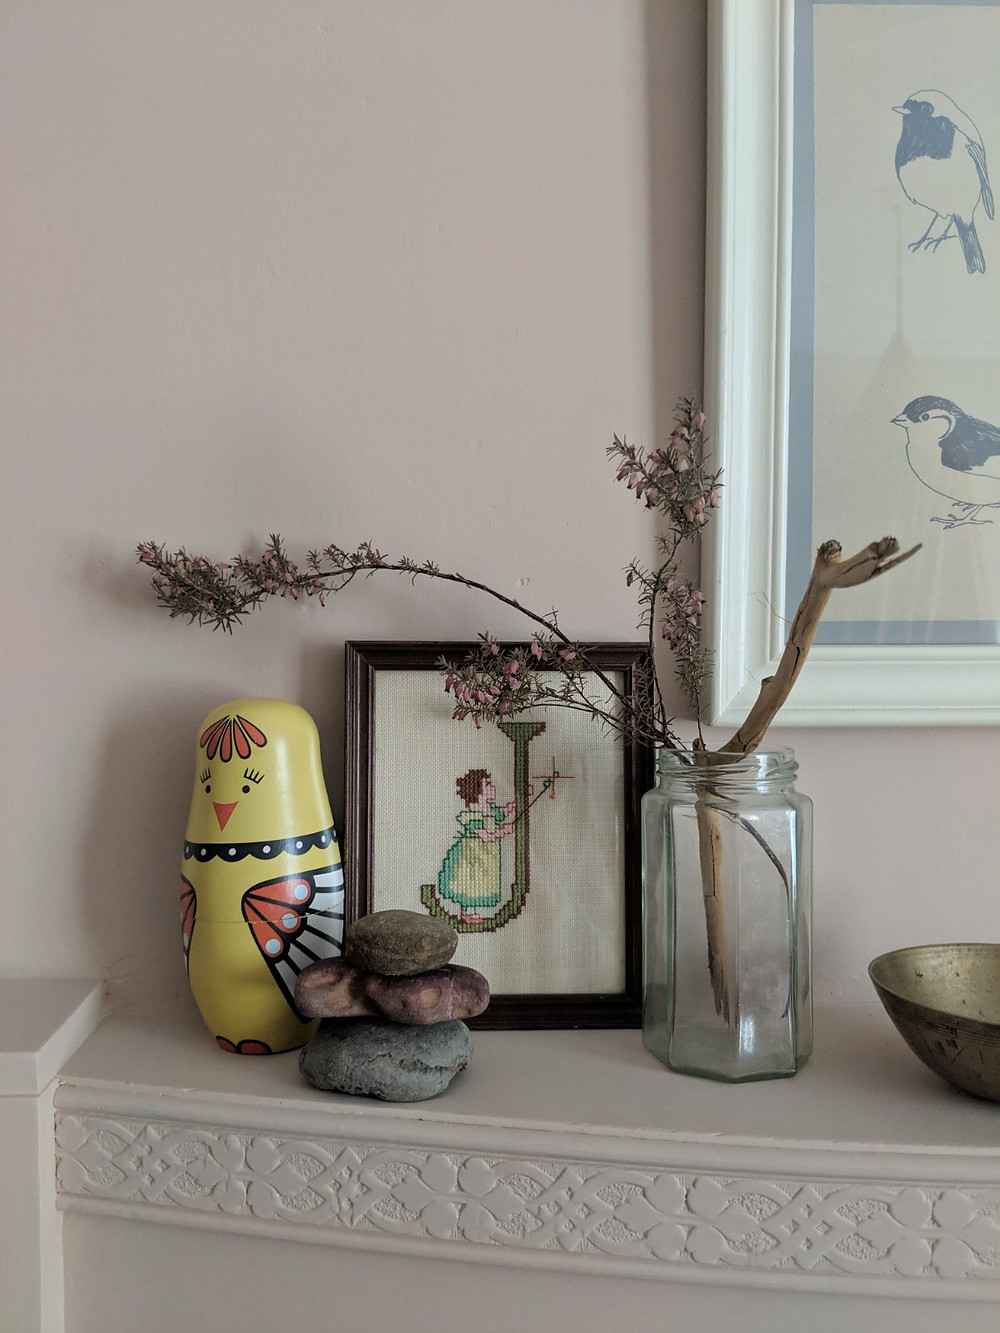 Children's treasures arranged on a pink mantelpiece